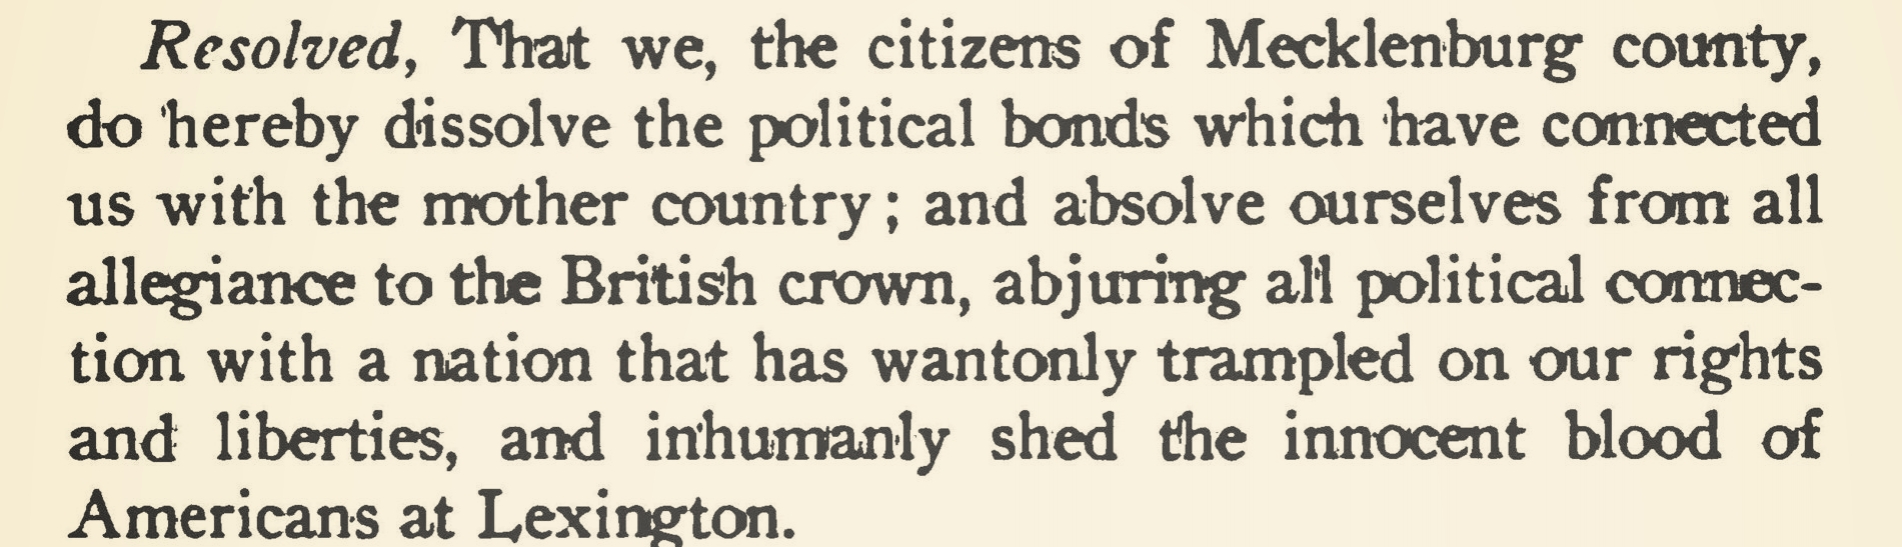 Source: J.B. Alexander,  The History of Mecklenburg County From 1740 to 1900  (1902)